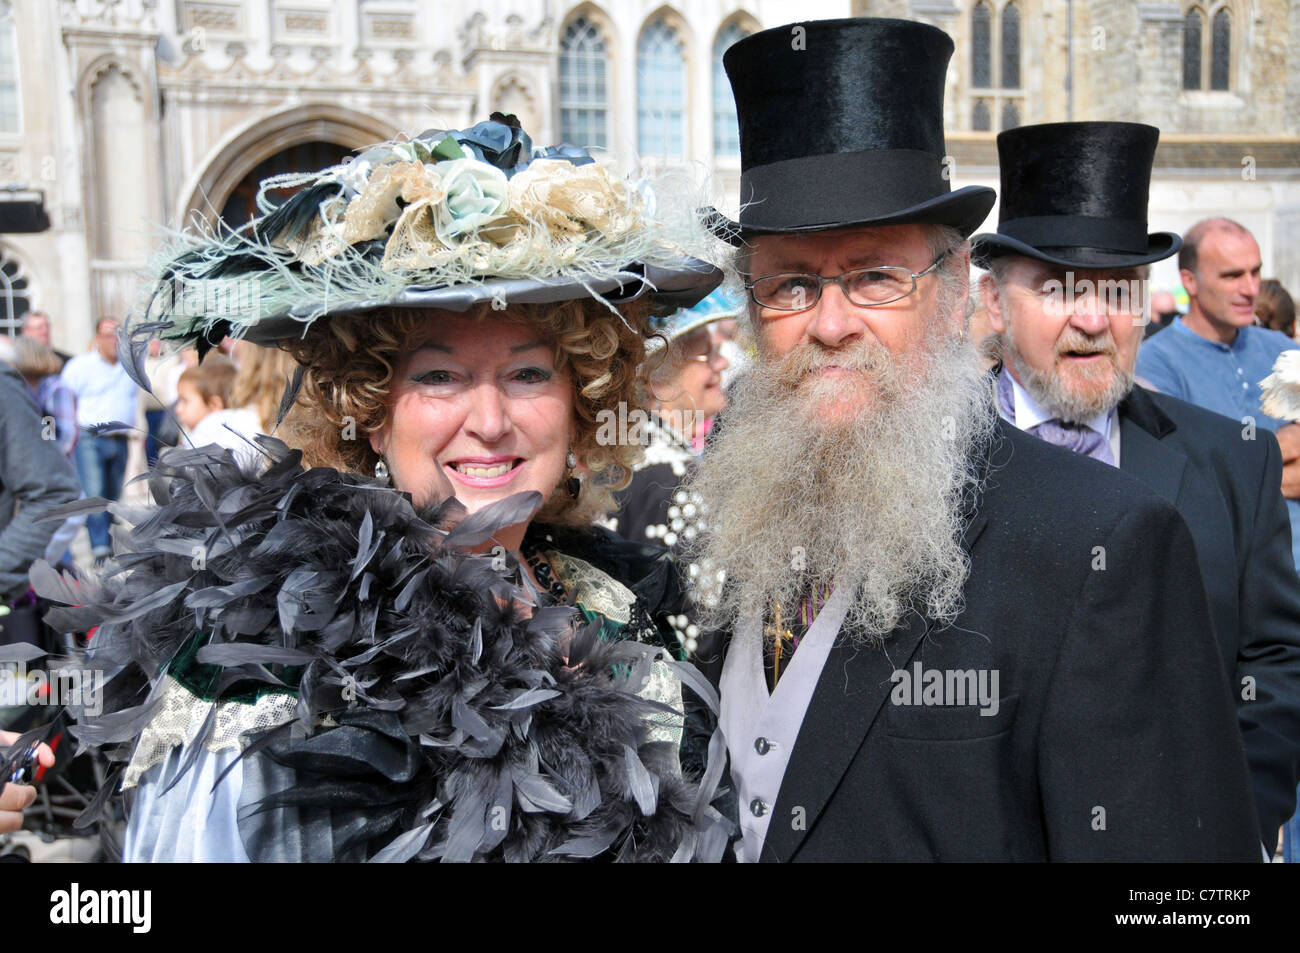 People dressed in Victorian costume Pearly Kings and Queens Guildhall Harvest Festival 2011 - Stock Image